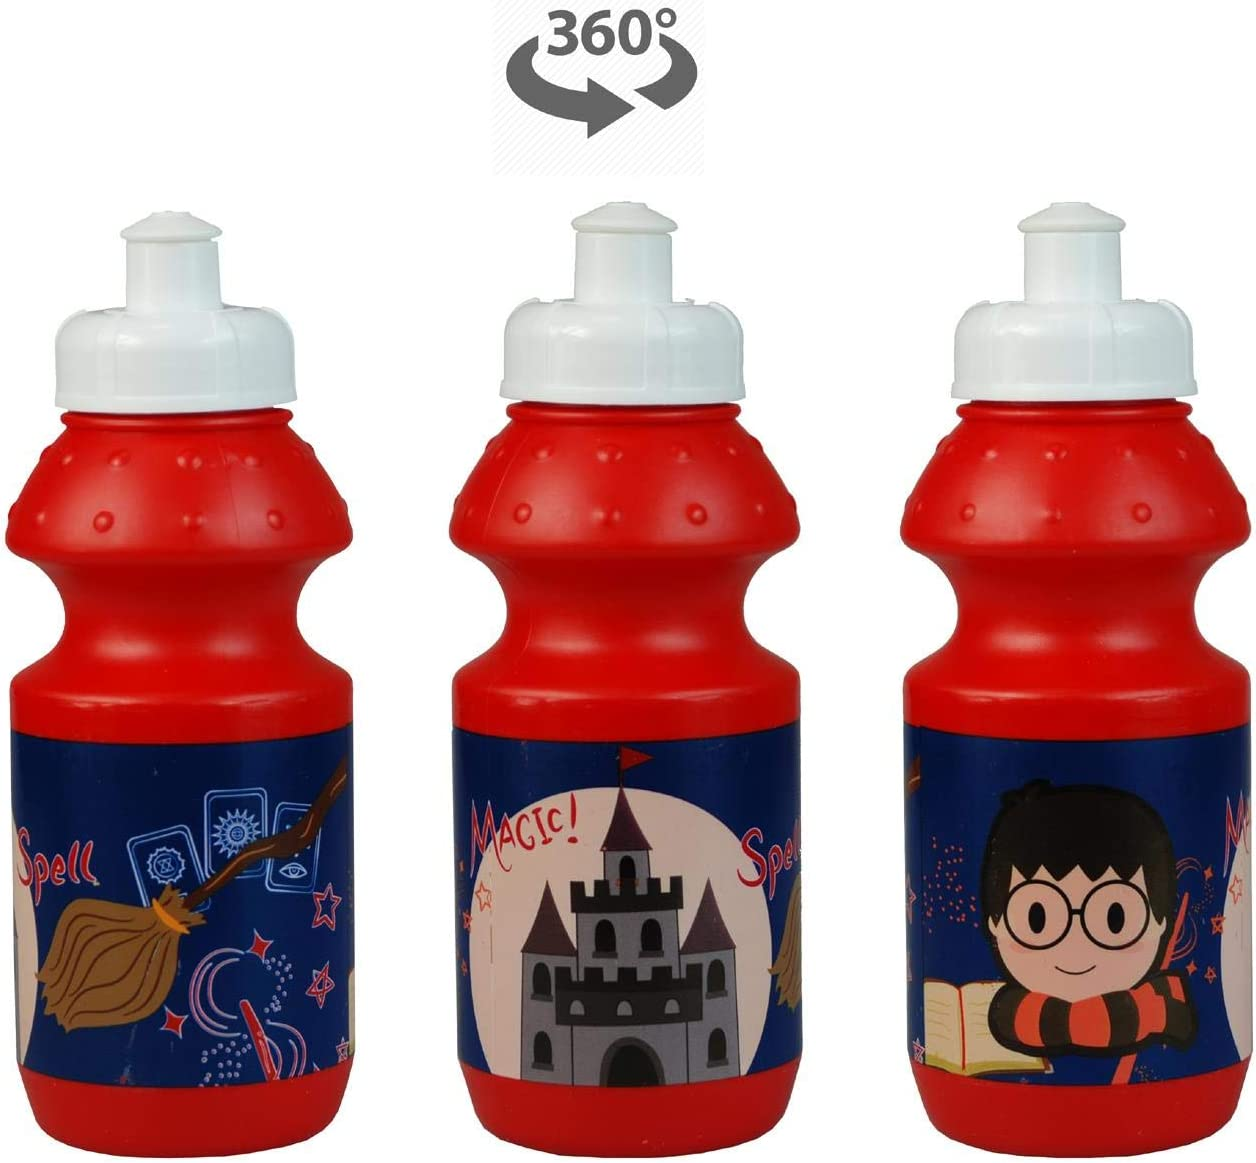 Harry Potter 8PC Back to School Bundle Sandwich Box Insulated Lunch Bag Drawstring Sports Bag inc Backpack Pencil Case /& Stationery Set. Coin Pouch Water Bottle